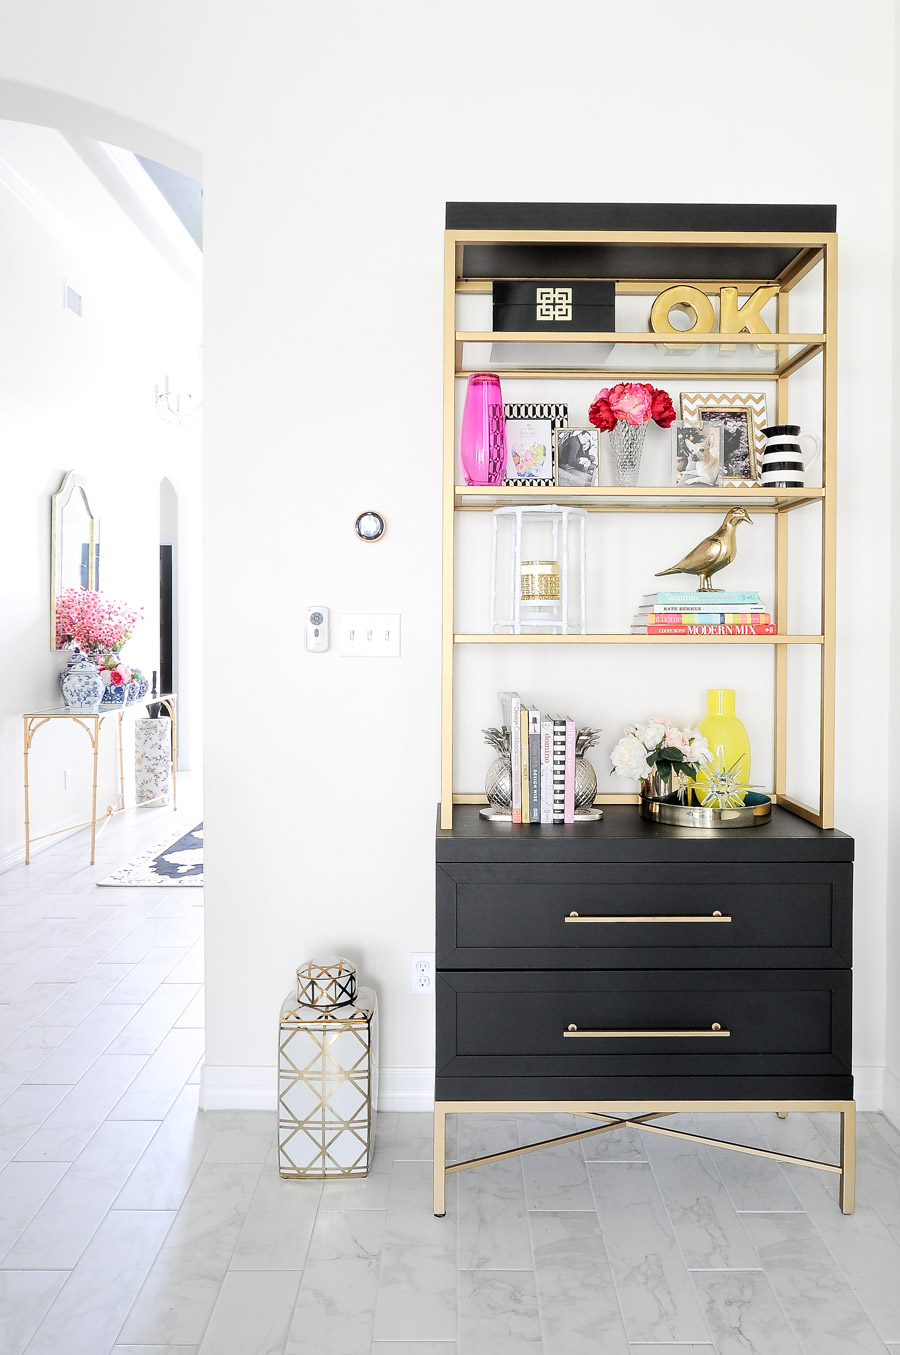 Black and gold etagere or bookcase decorated and styled with spring colors and floral accents.